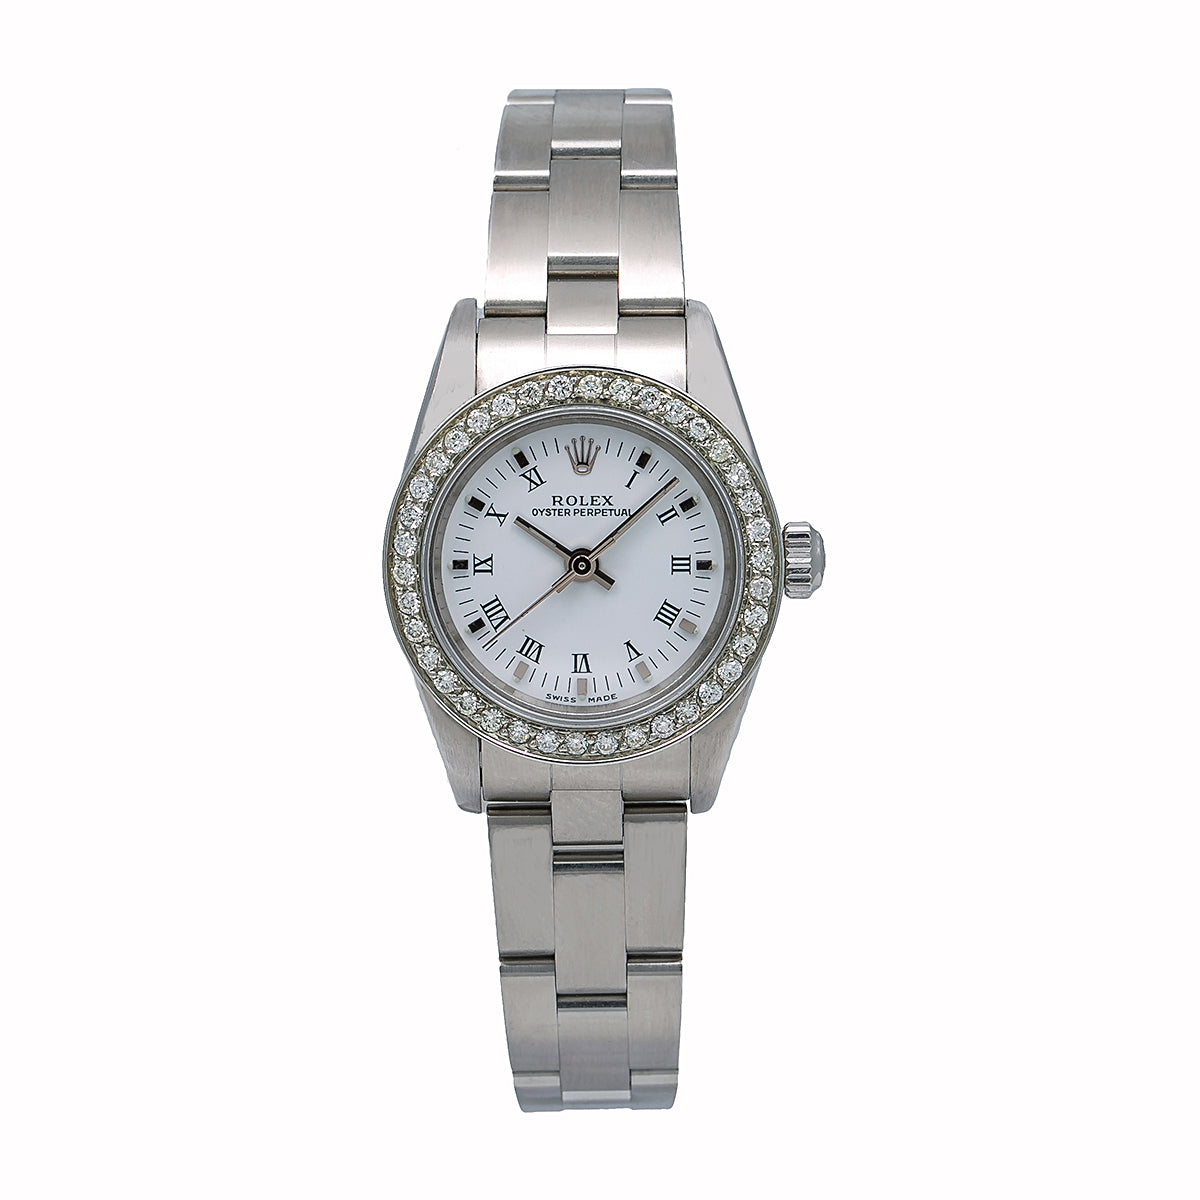 Rolex Oyster Perpetual Ladies Diamond Watch, 76094 26mm, White Diamond Dial With 0.80 CT Diamonds